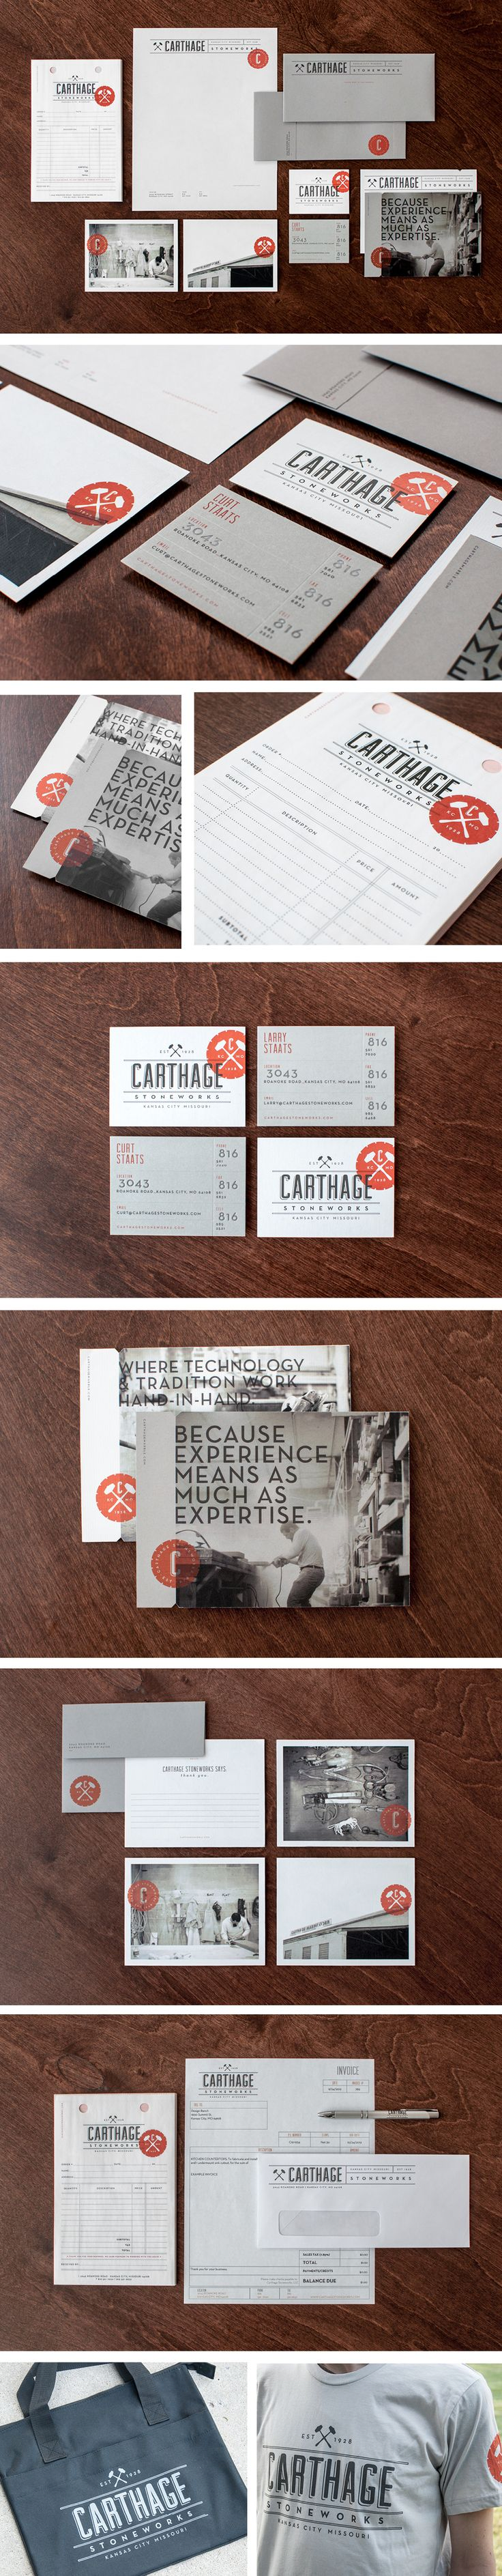 Carthage Stoneworks | Branding Business Collateral Copywriting Design Marketing Materials Name Signage Website | Design Ranch